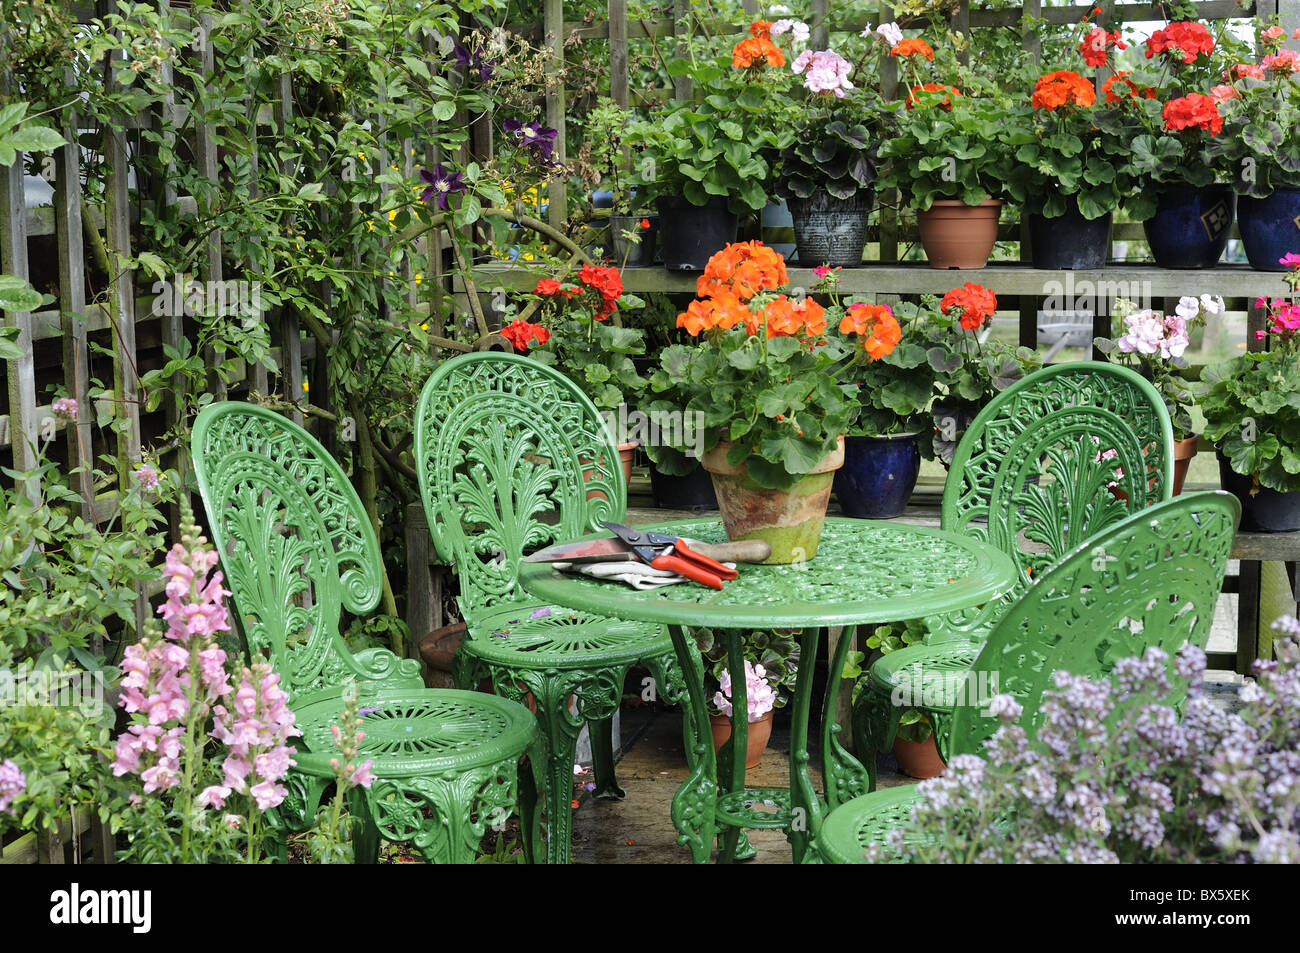 Garden furniture on patio with trellis and potted geraniums norfolk uk july